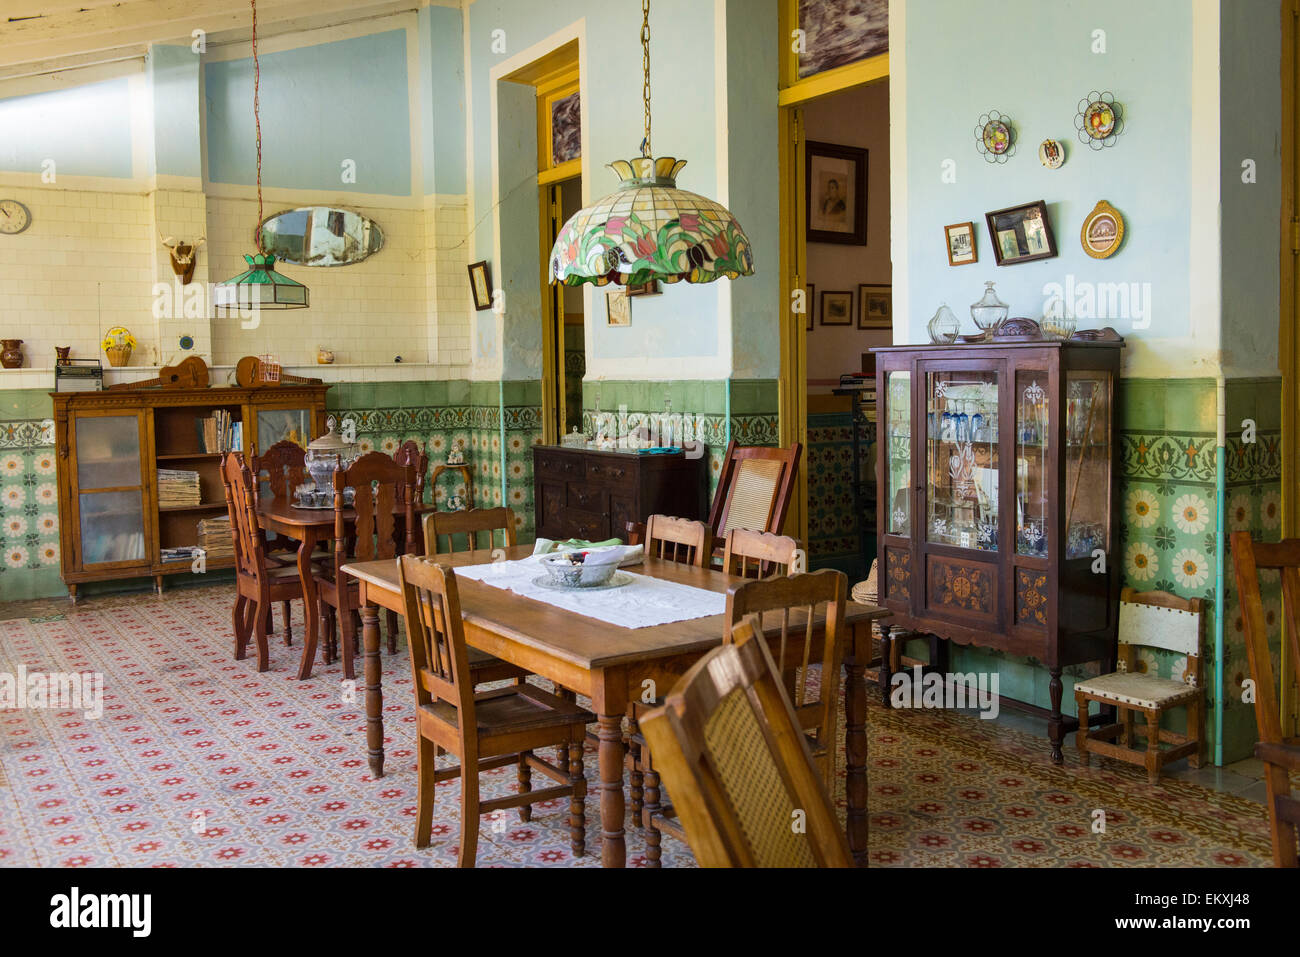 Cuba Trinidad Typical Cuban Home Old Antique Furniture Sideboard Vitrine Ornate Walls Tiles Lamp Shades Table Chairs